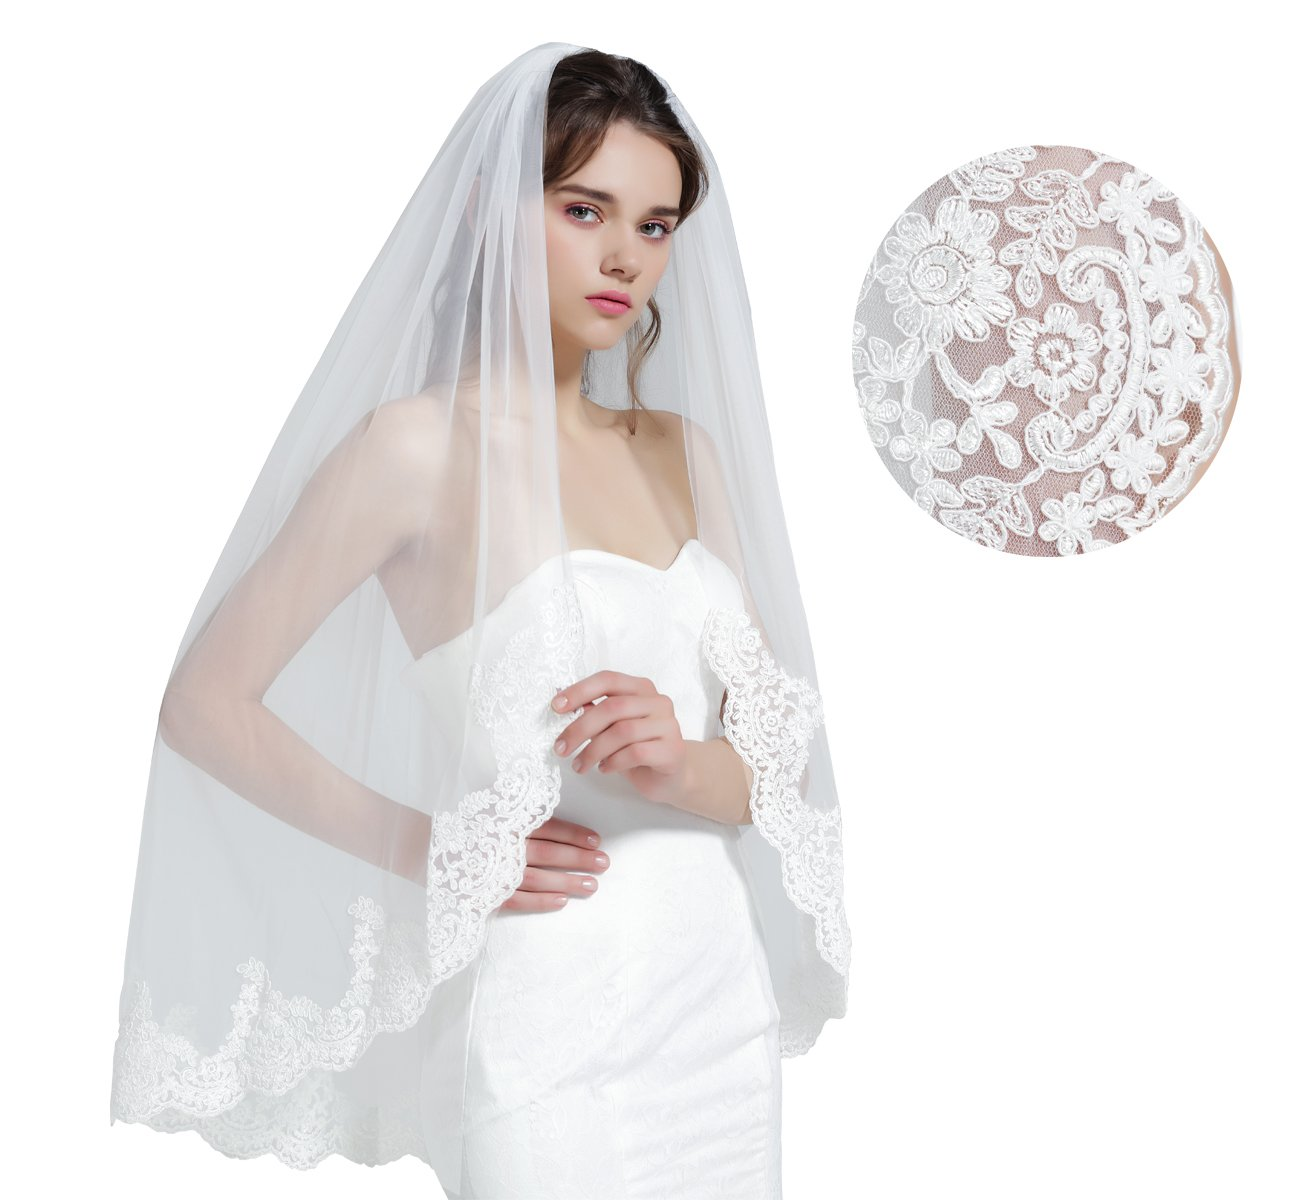 Wedding Bridal Veil with Comb 1 Tier Lace Applique Edge Fingertip Length 41''